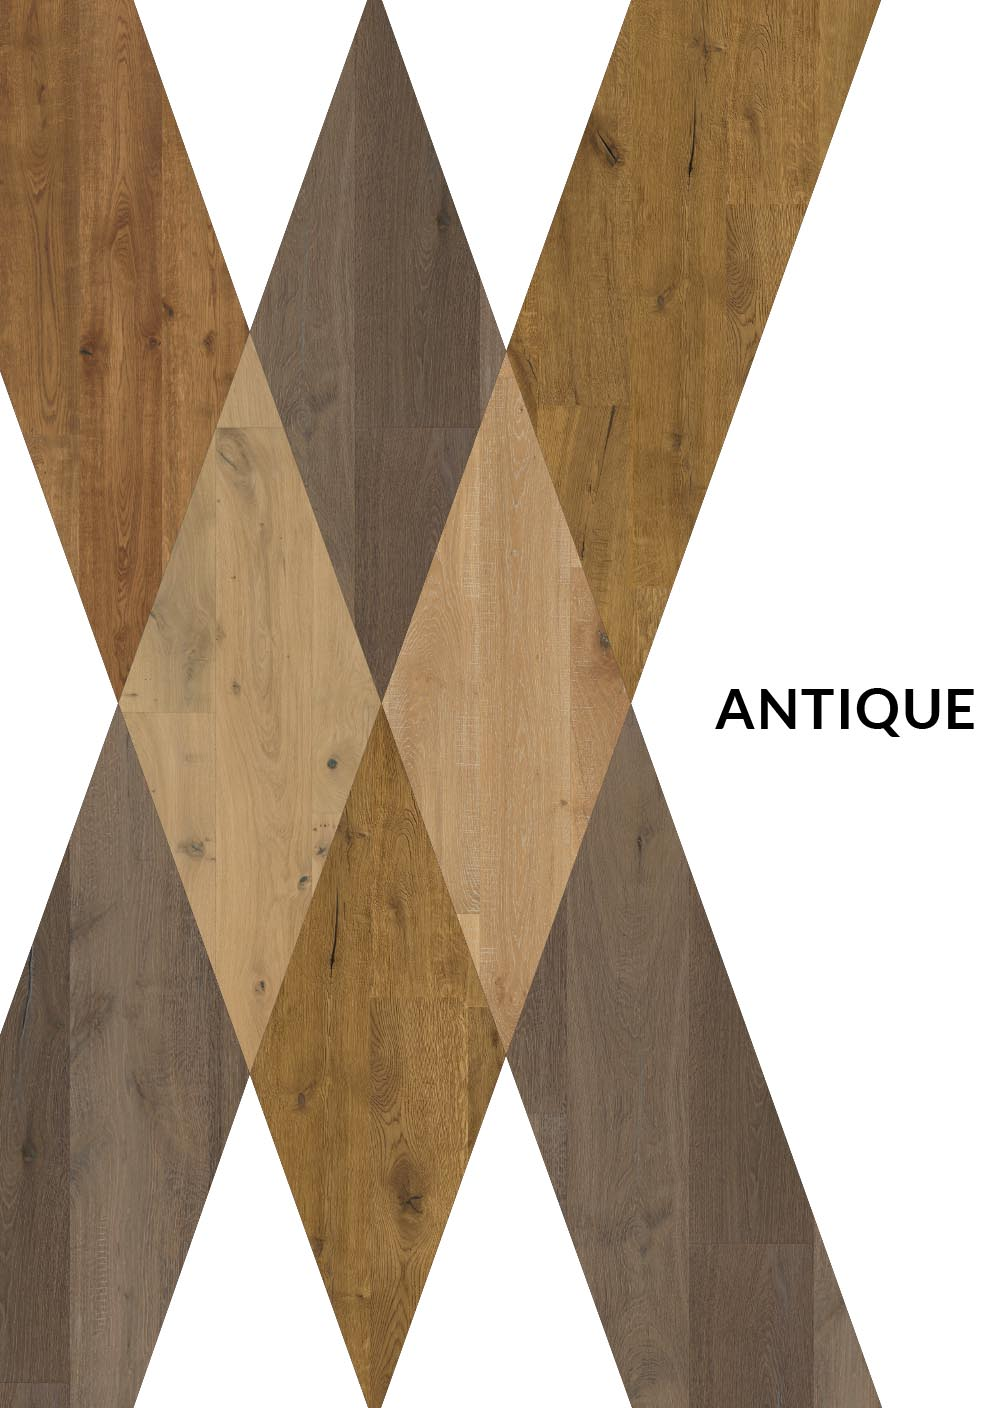 Forestry Timber Antique Collection Textured Catalogue - engineered flooring